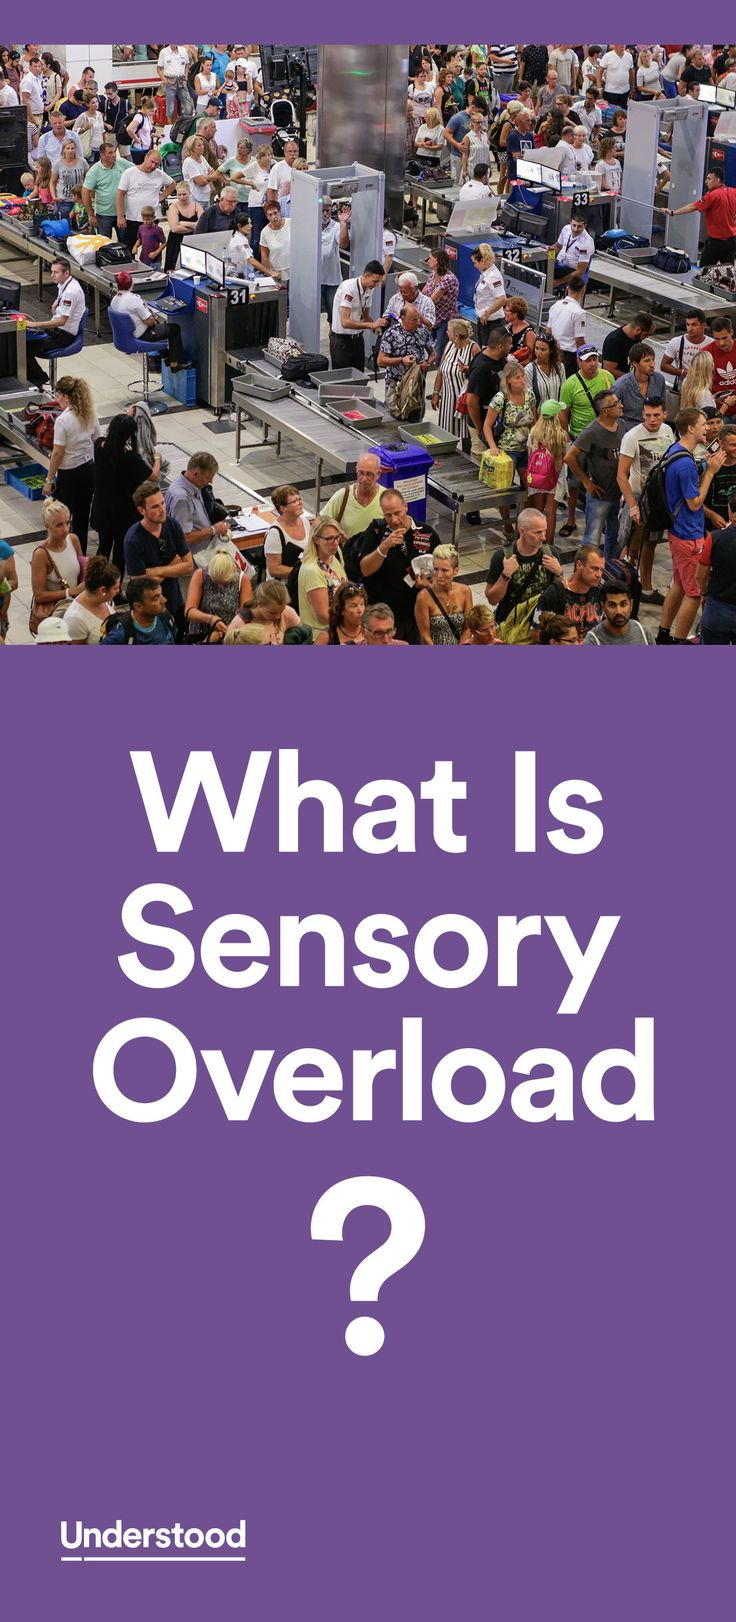 Sensory overload can get in the way of everyday life for kids with ADHD or sensory processing issues.